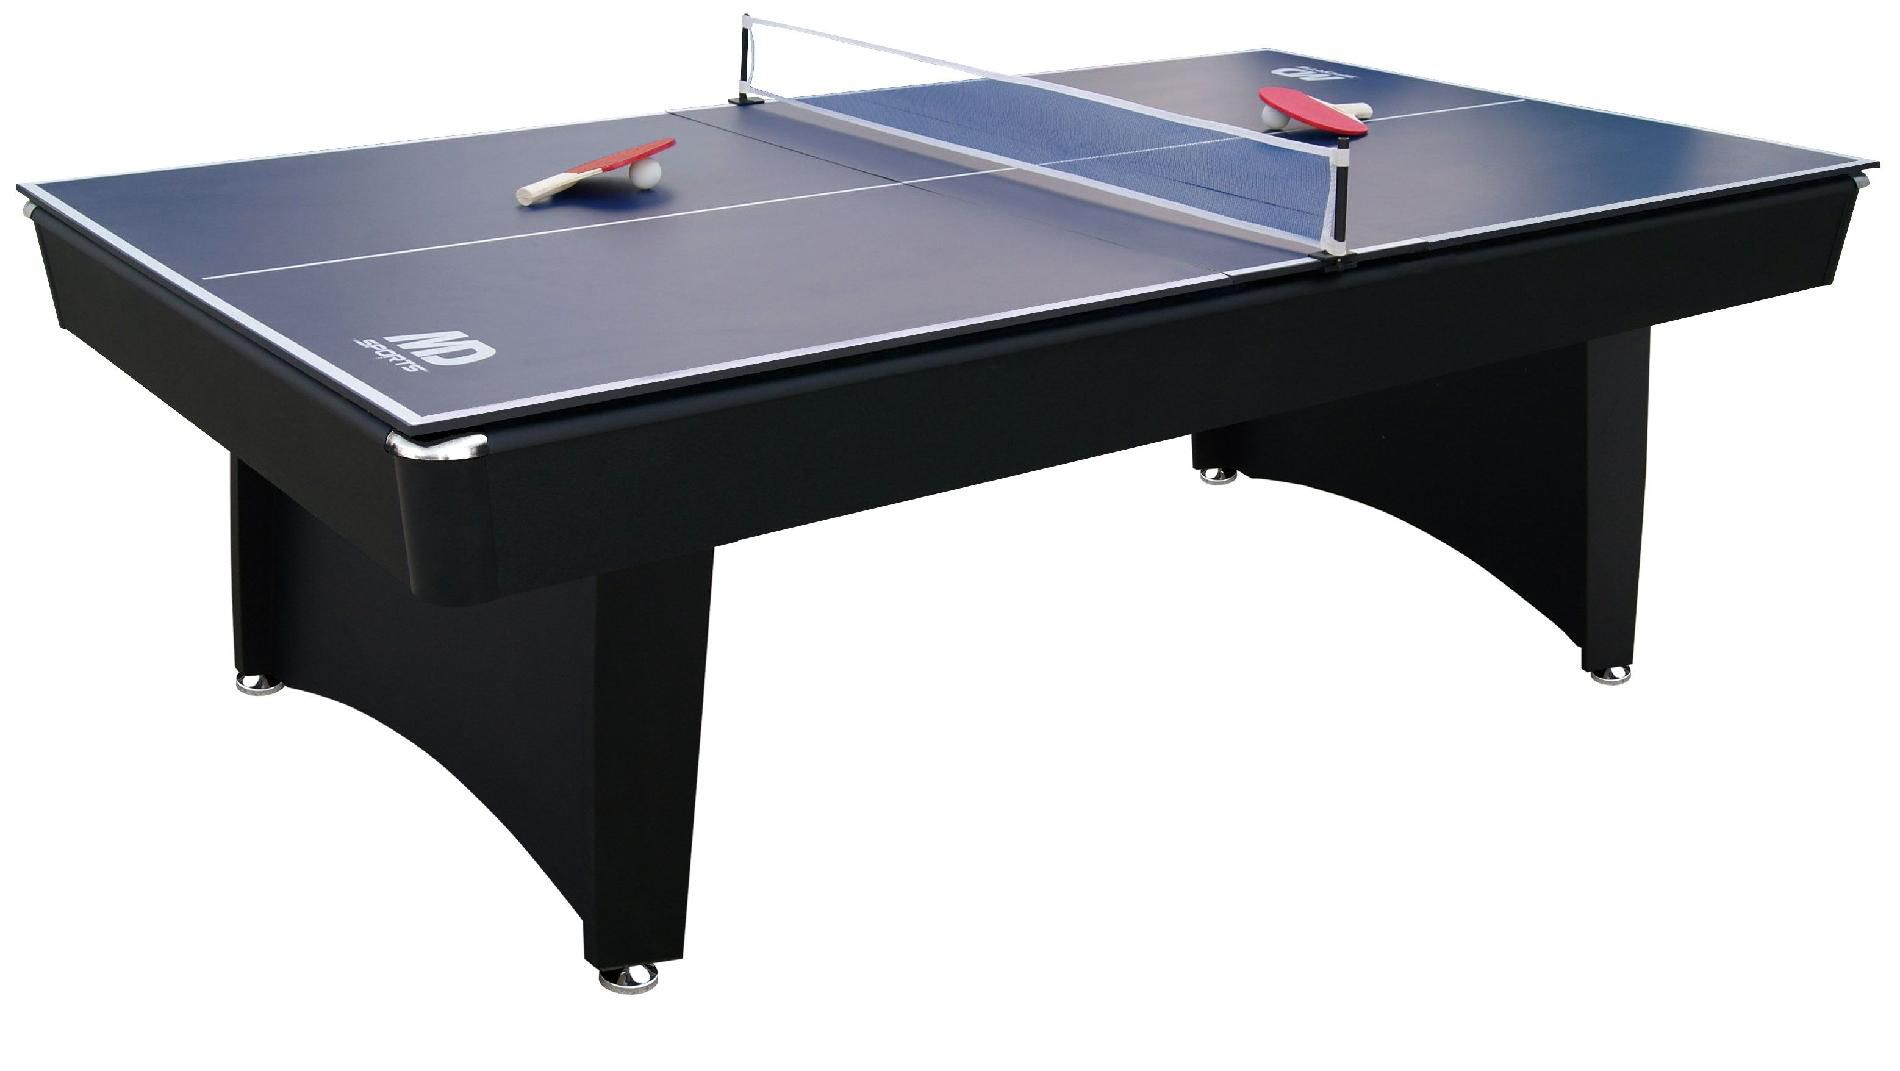 MD Sports 7ft Brookfield Billiard Table w/ BONUS Table Tennis Top